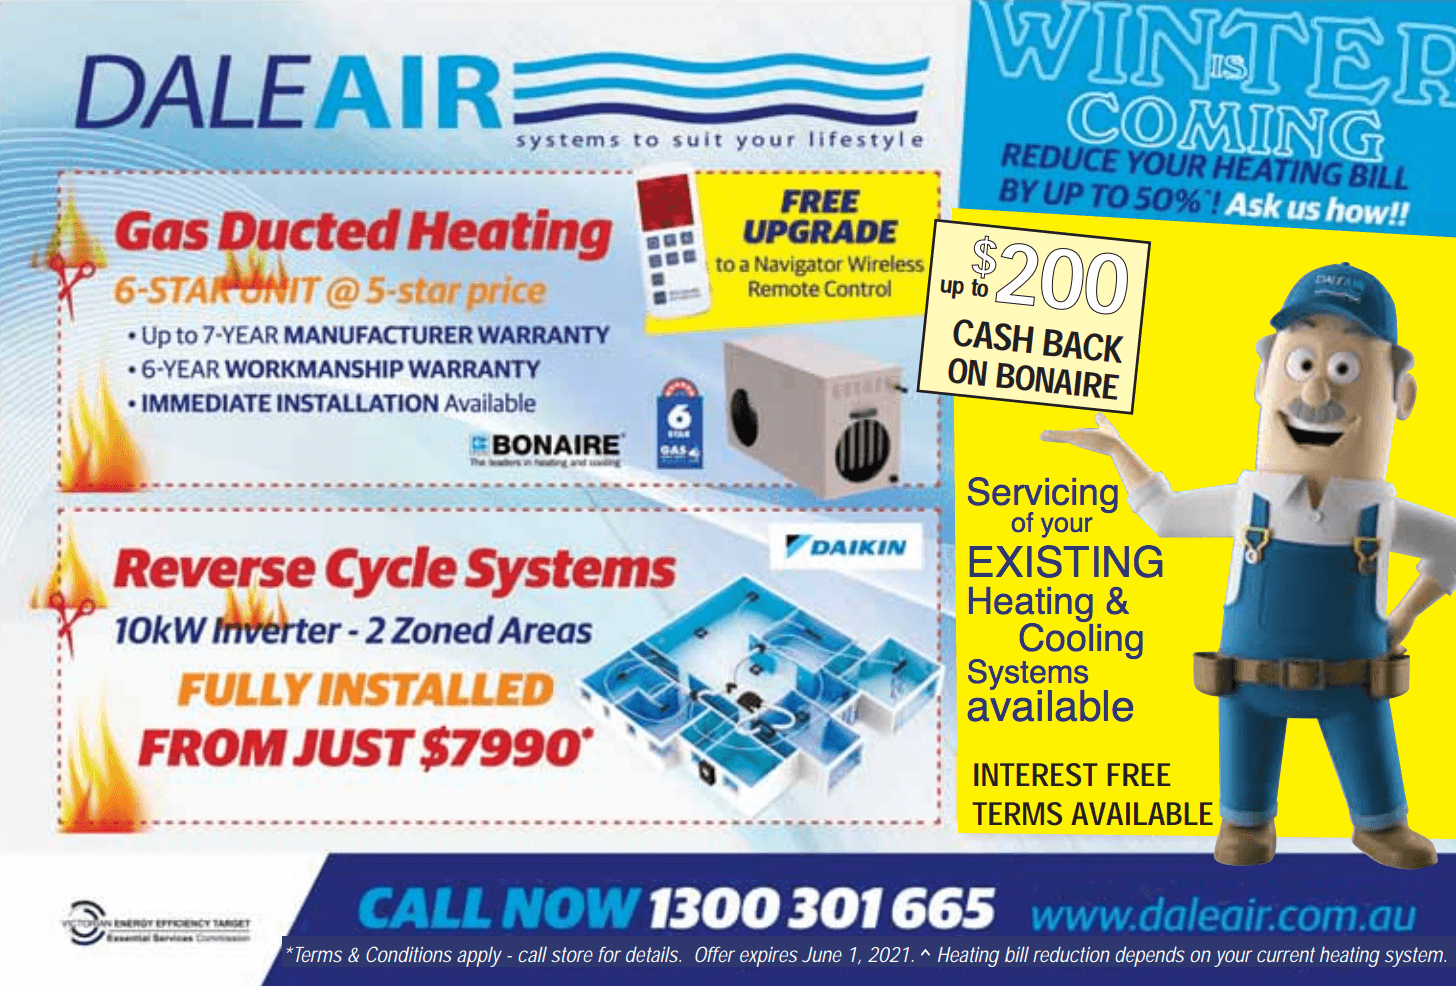 Dale Air - Winter Heating Offers